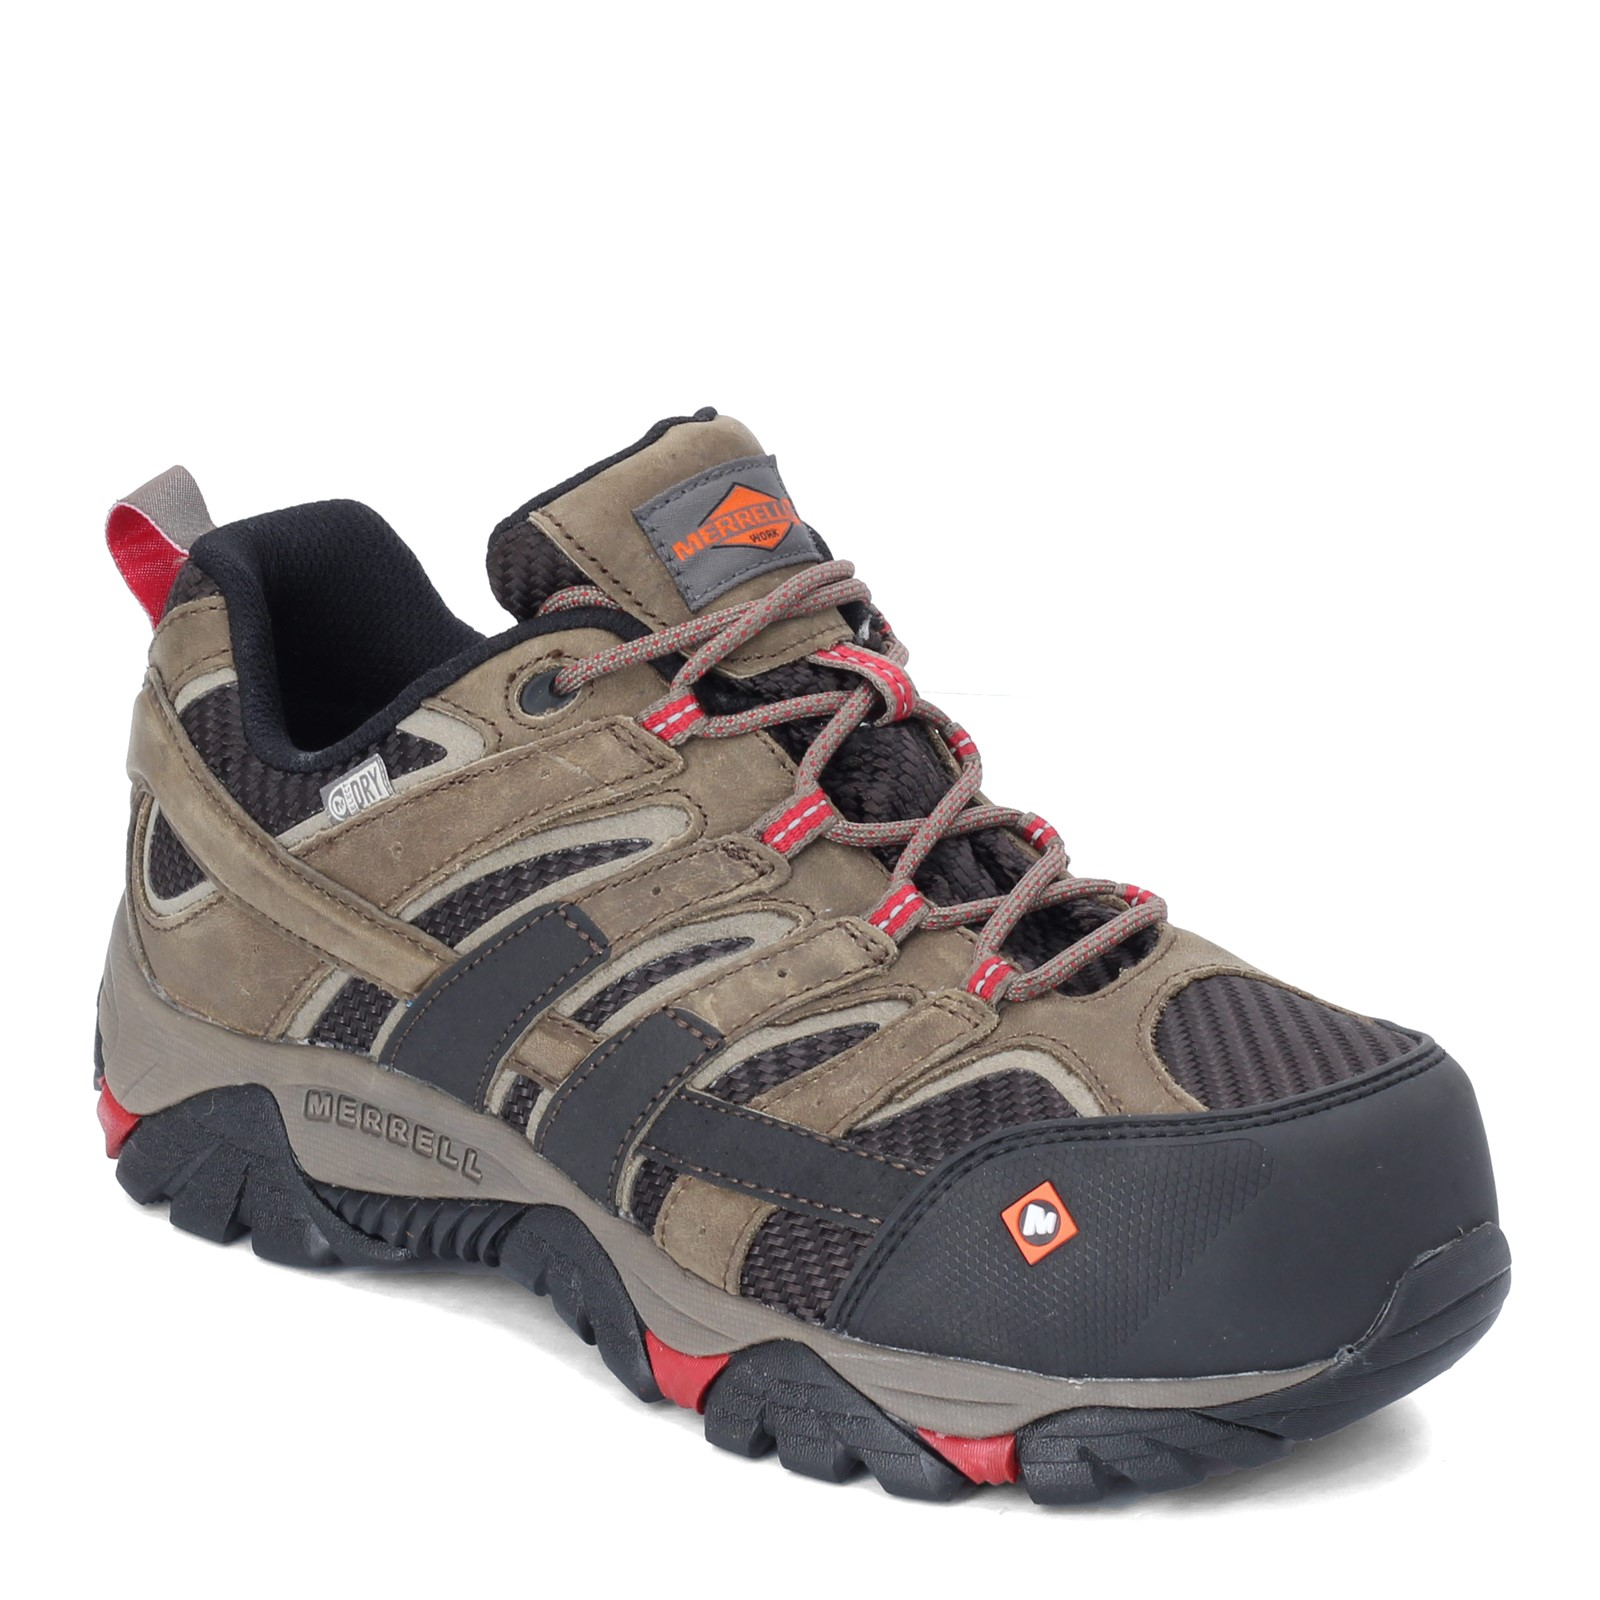 Men's Merrell, Moab 2 Vent Low Waterproof Composite Toe Work Shoe